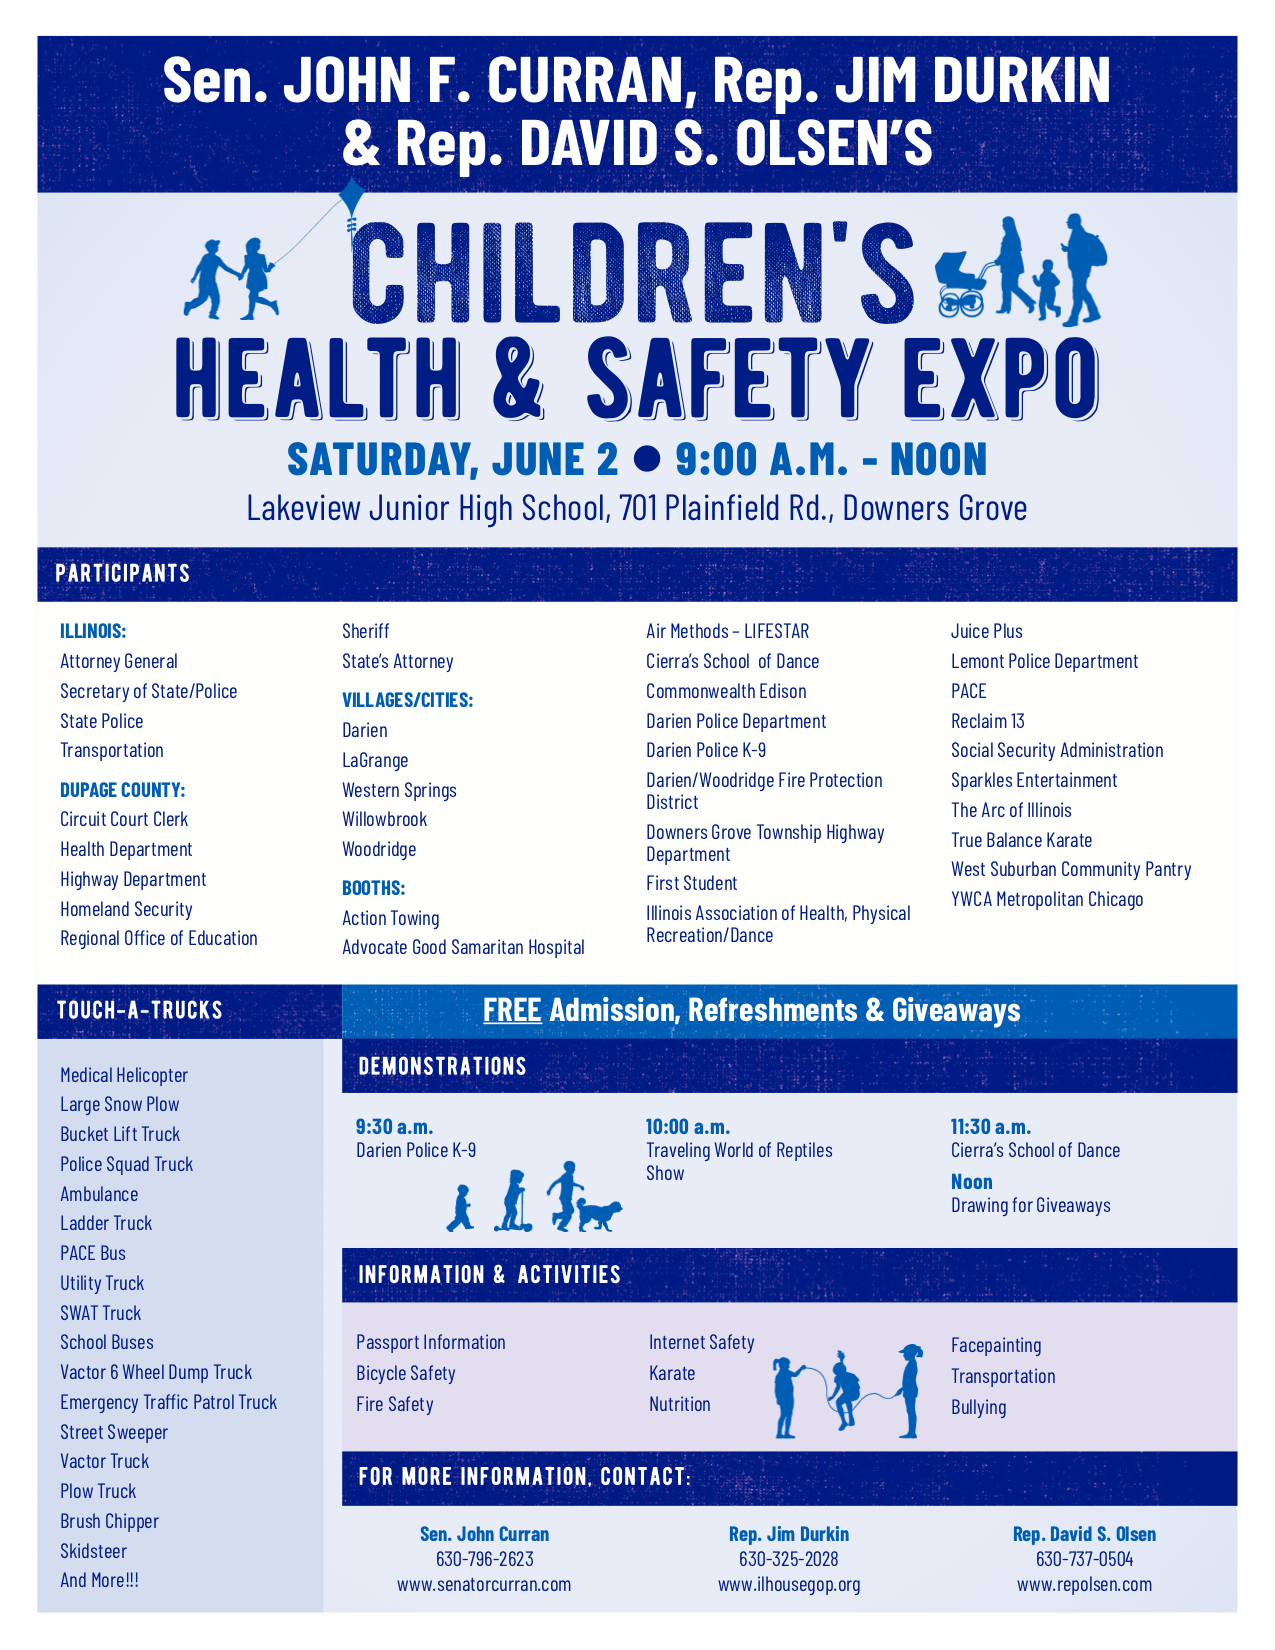 durkin_curran_olsen_kids_fair_flyer_2018.png